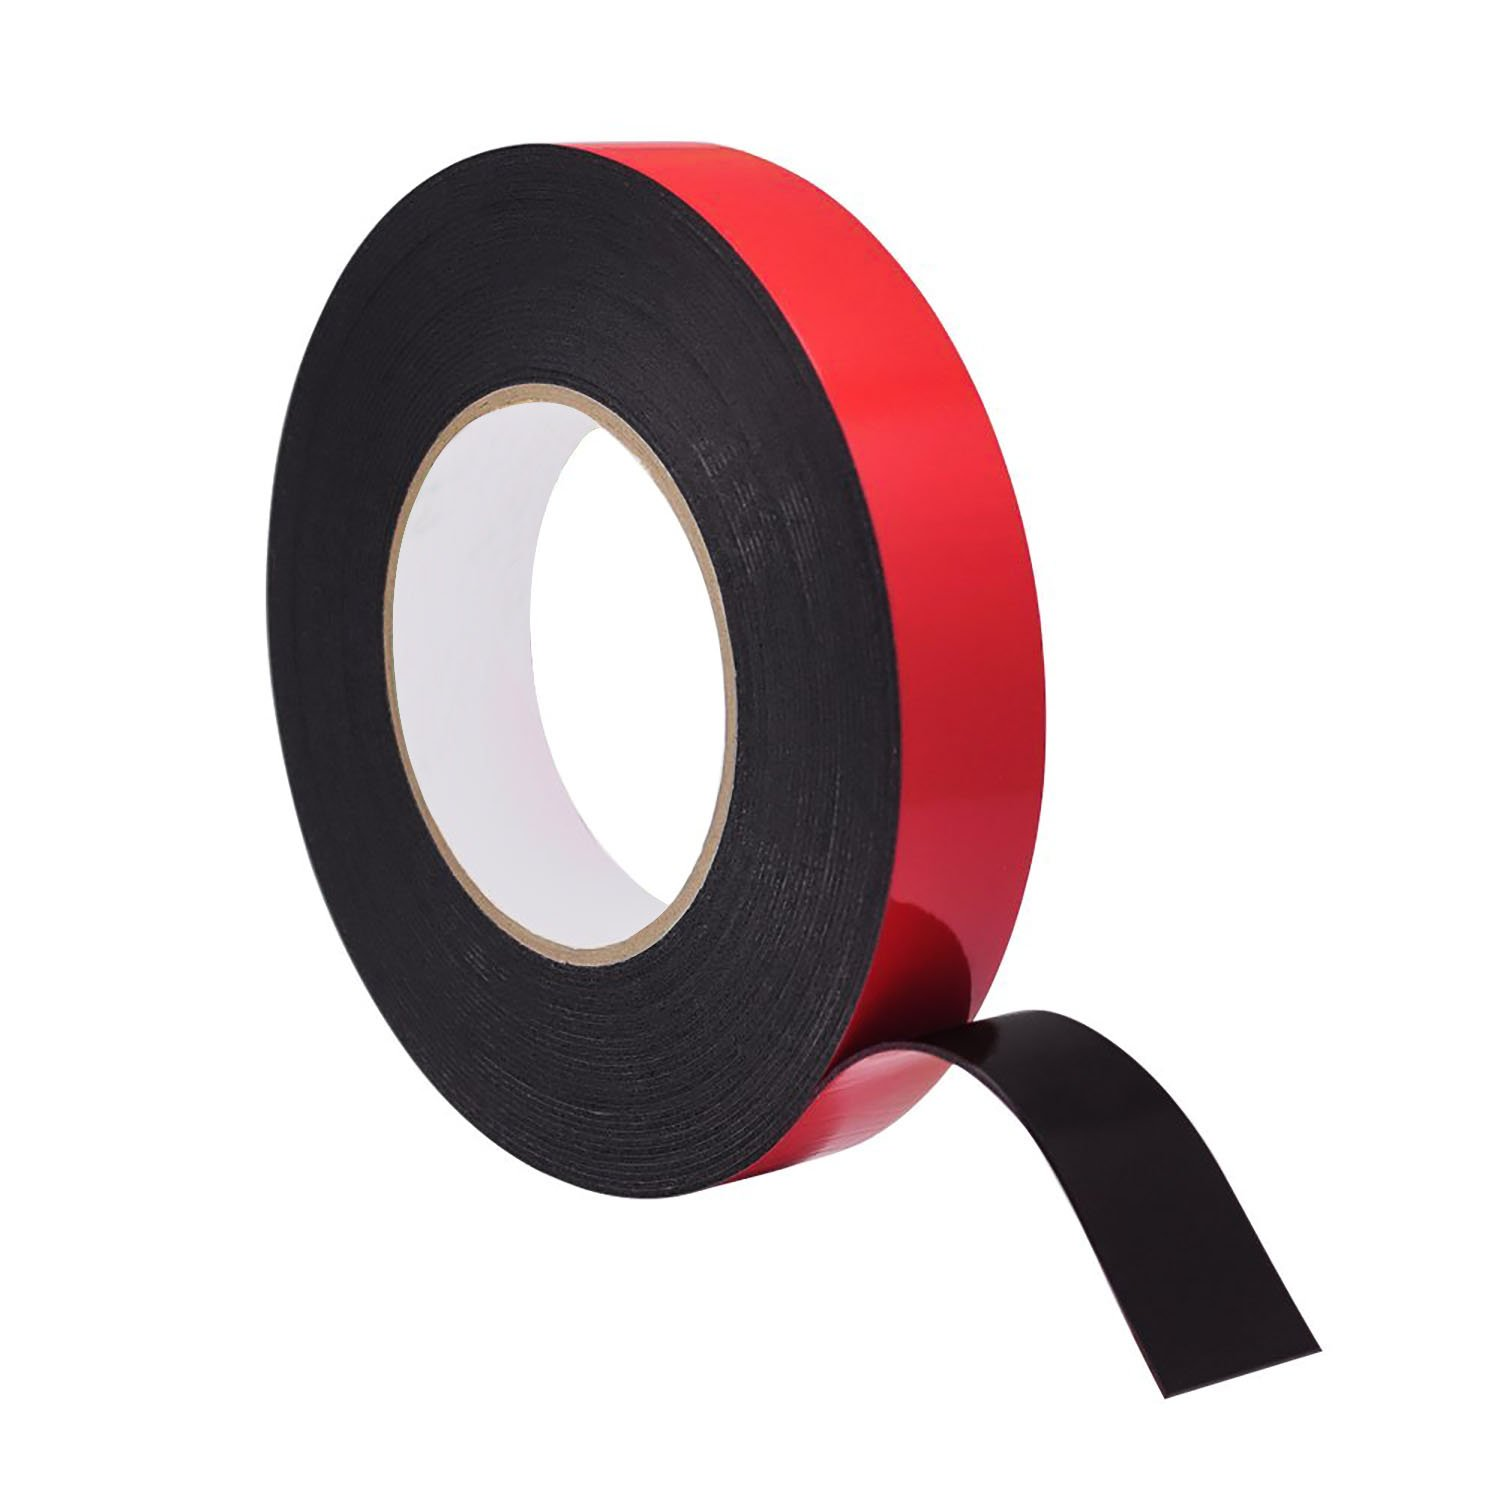 1-Inch x 10 Yards (25.5mm x 9.15m), Extreme Mounting Tape, Heavy Duty Double Sided Tape, Removable, With Weight Holding Capacity